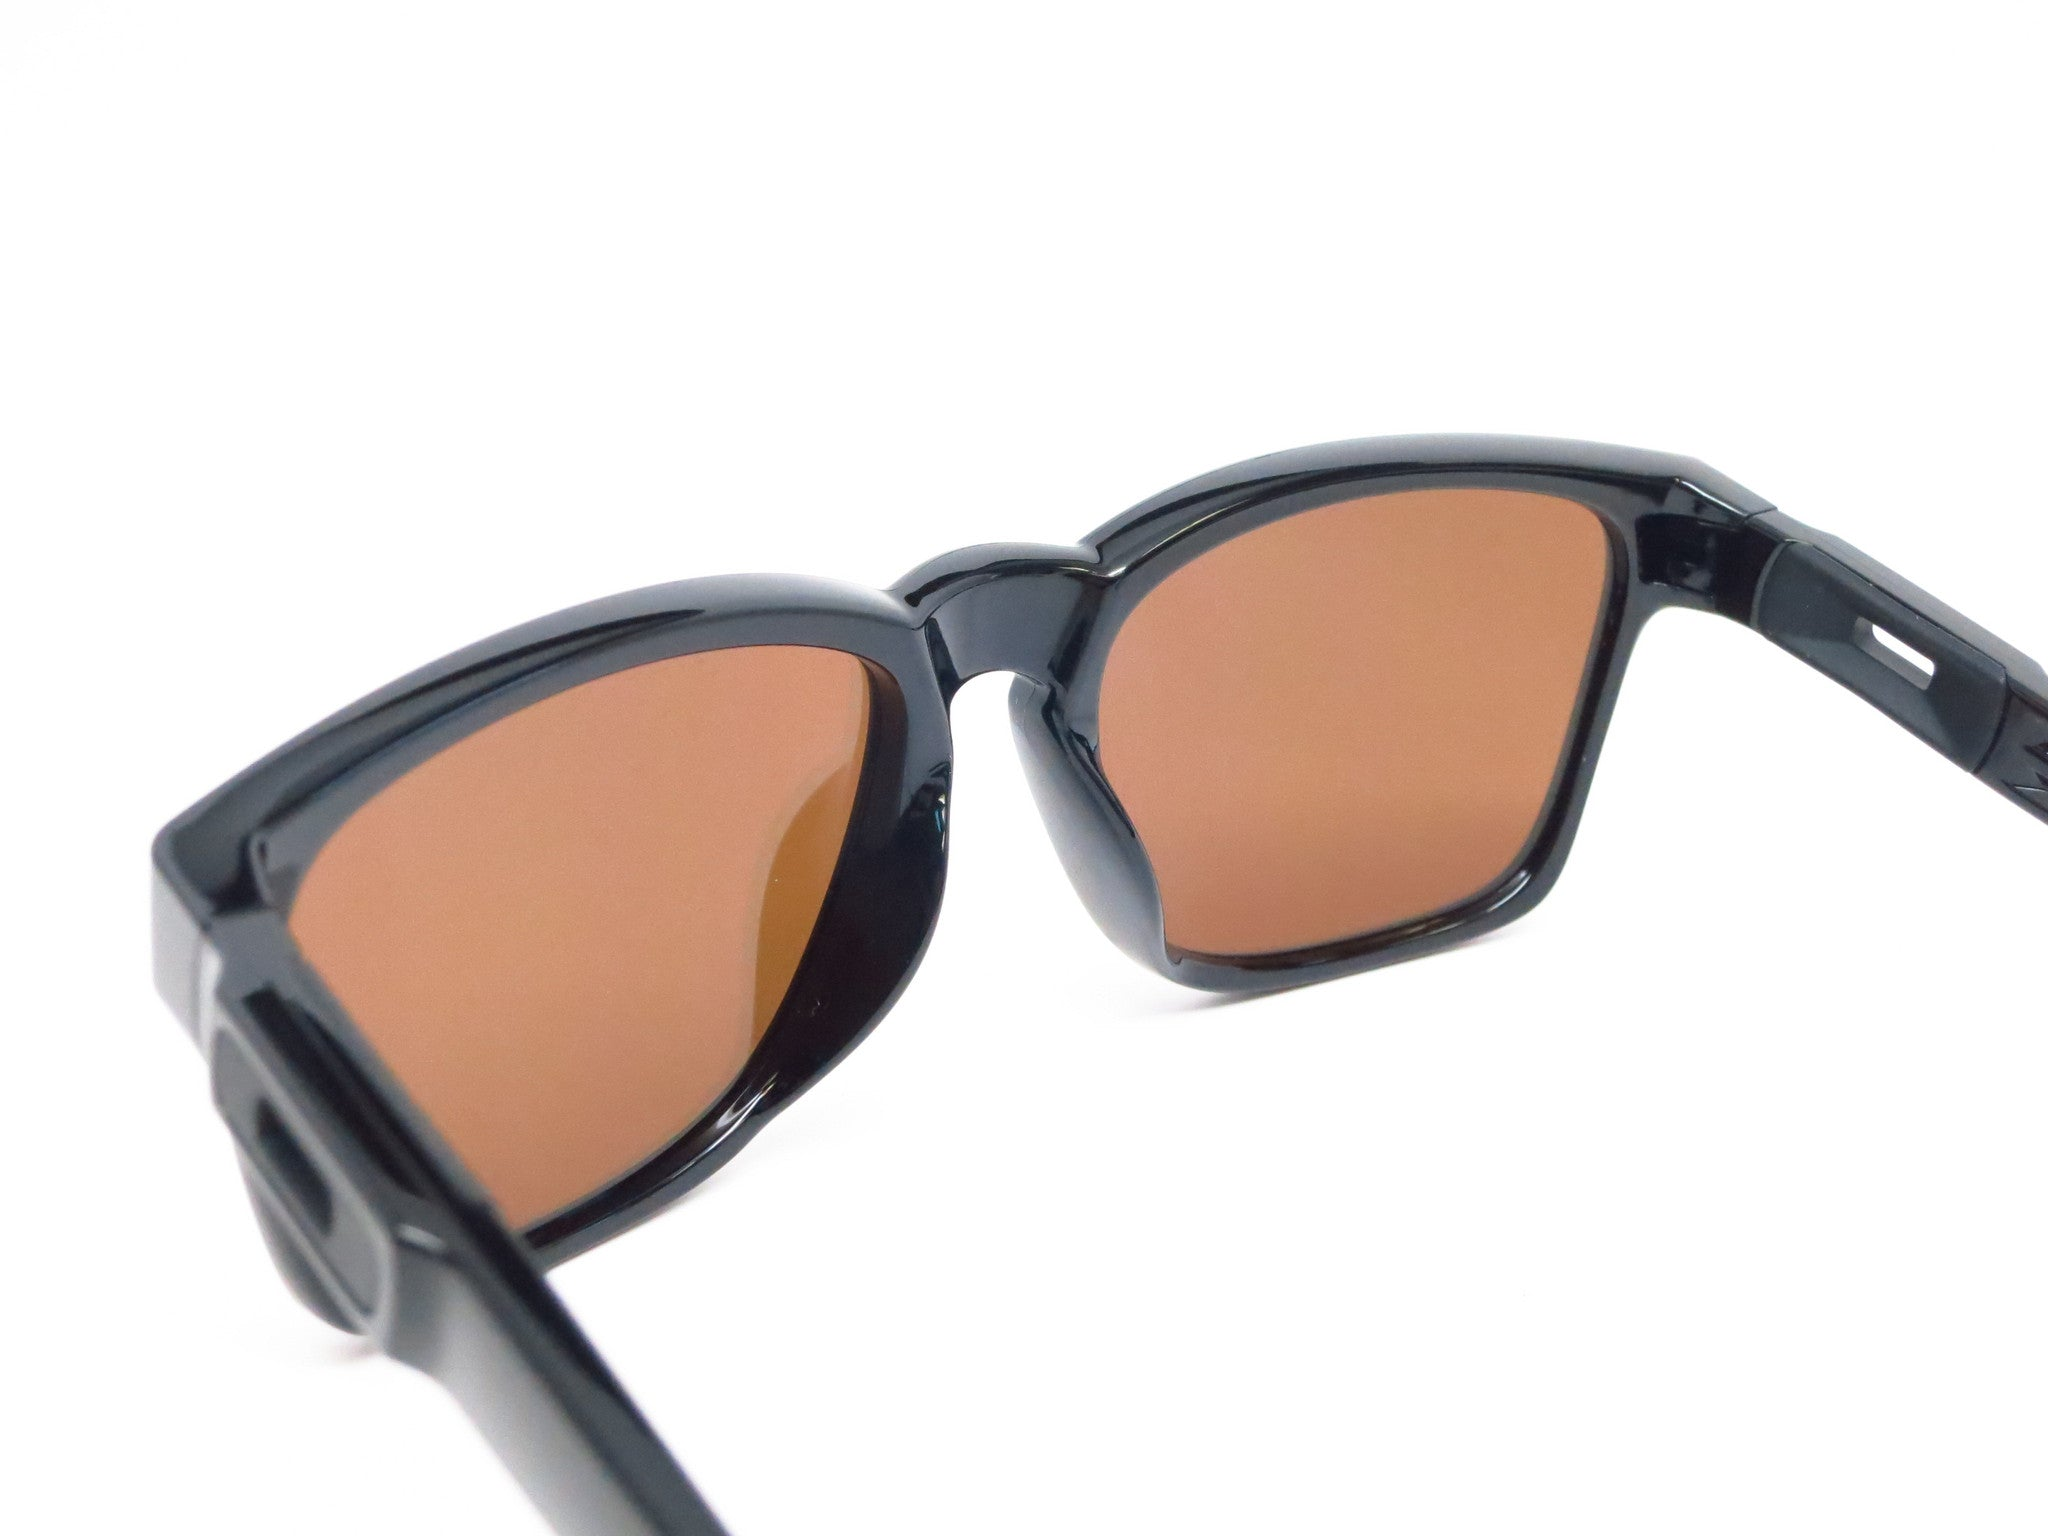 oakley shades g3mg  Oakley Catalyst OO9272-04 Polished Black Sunglasses